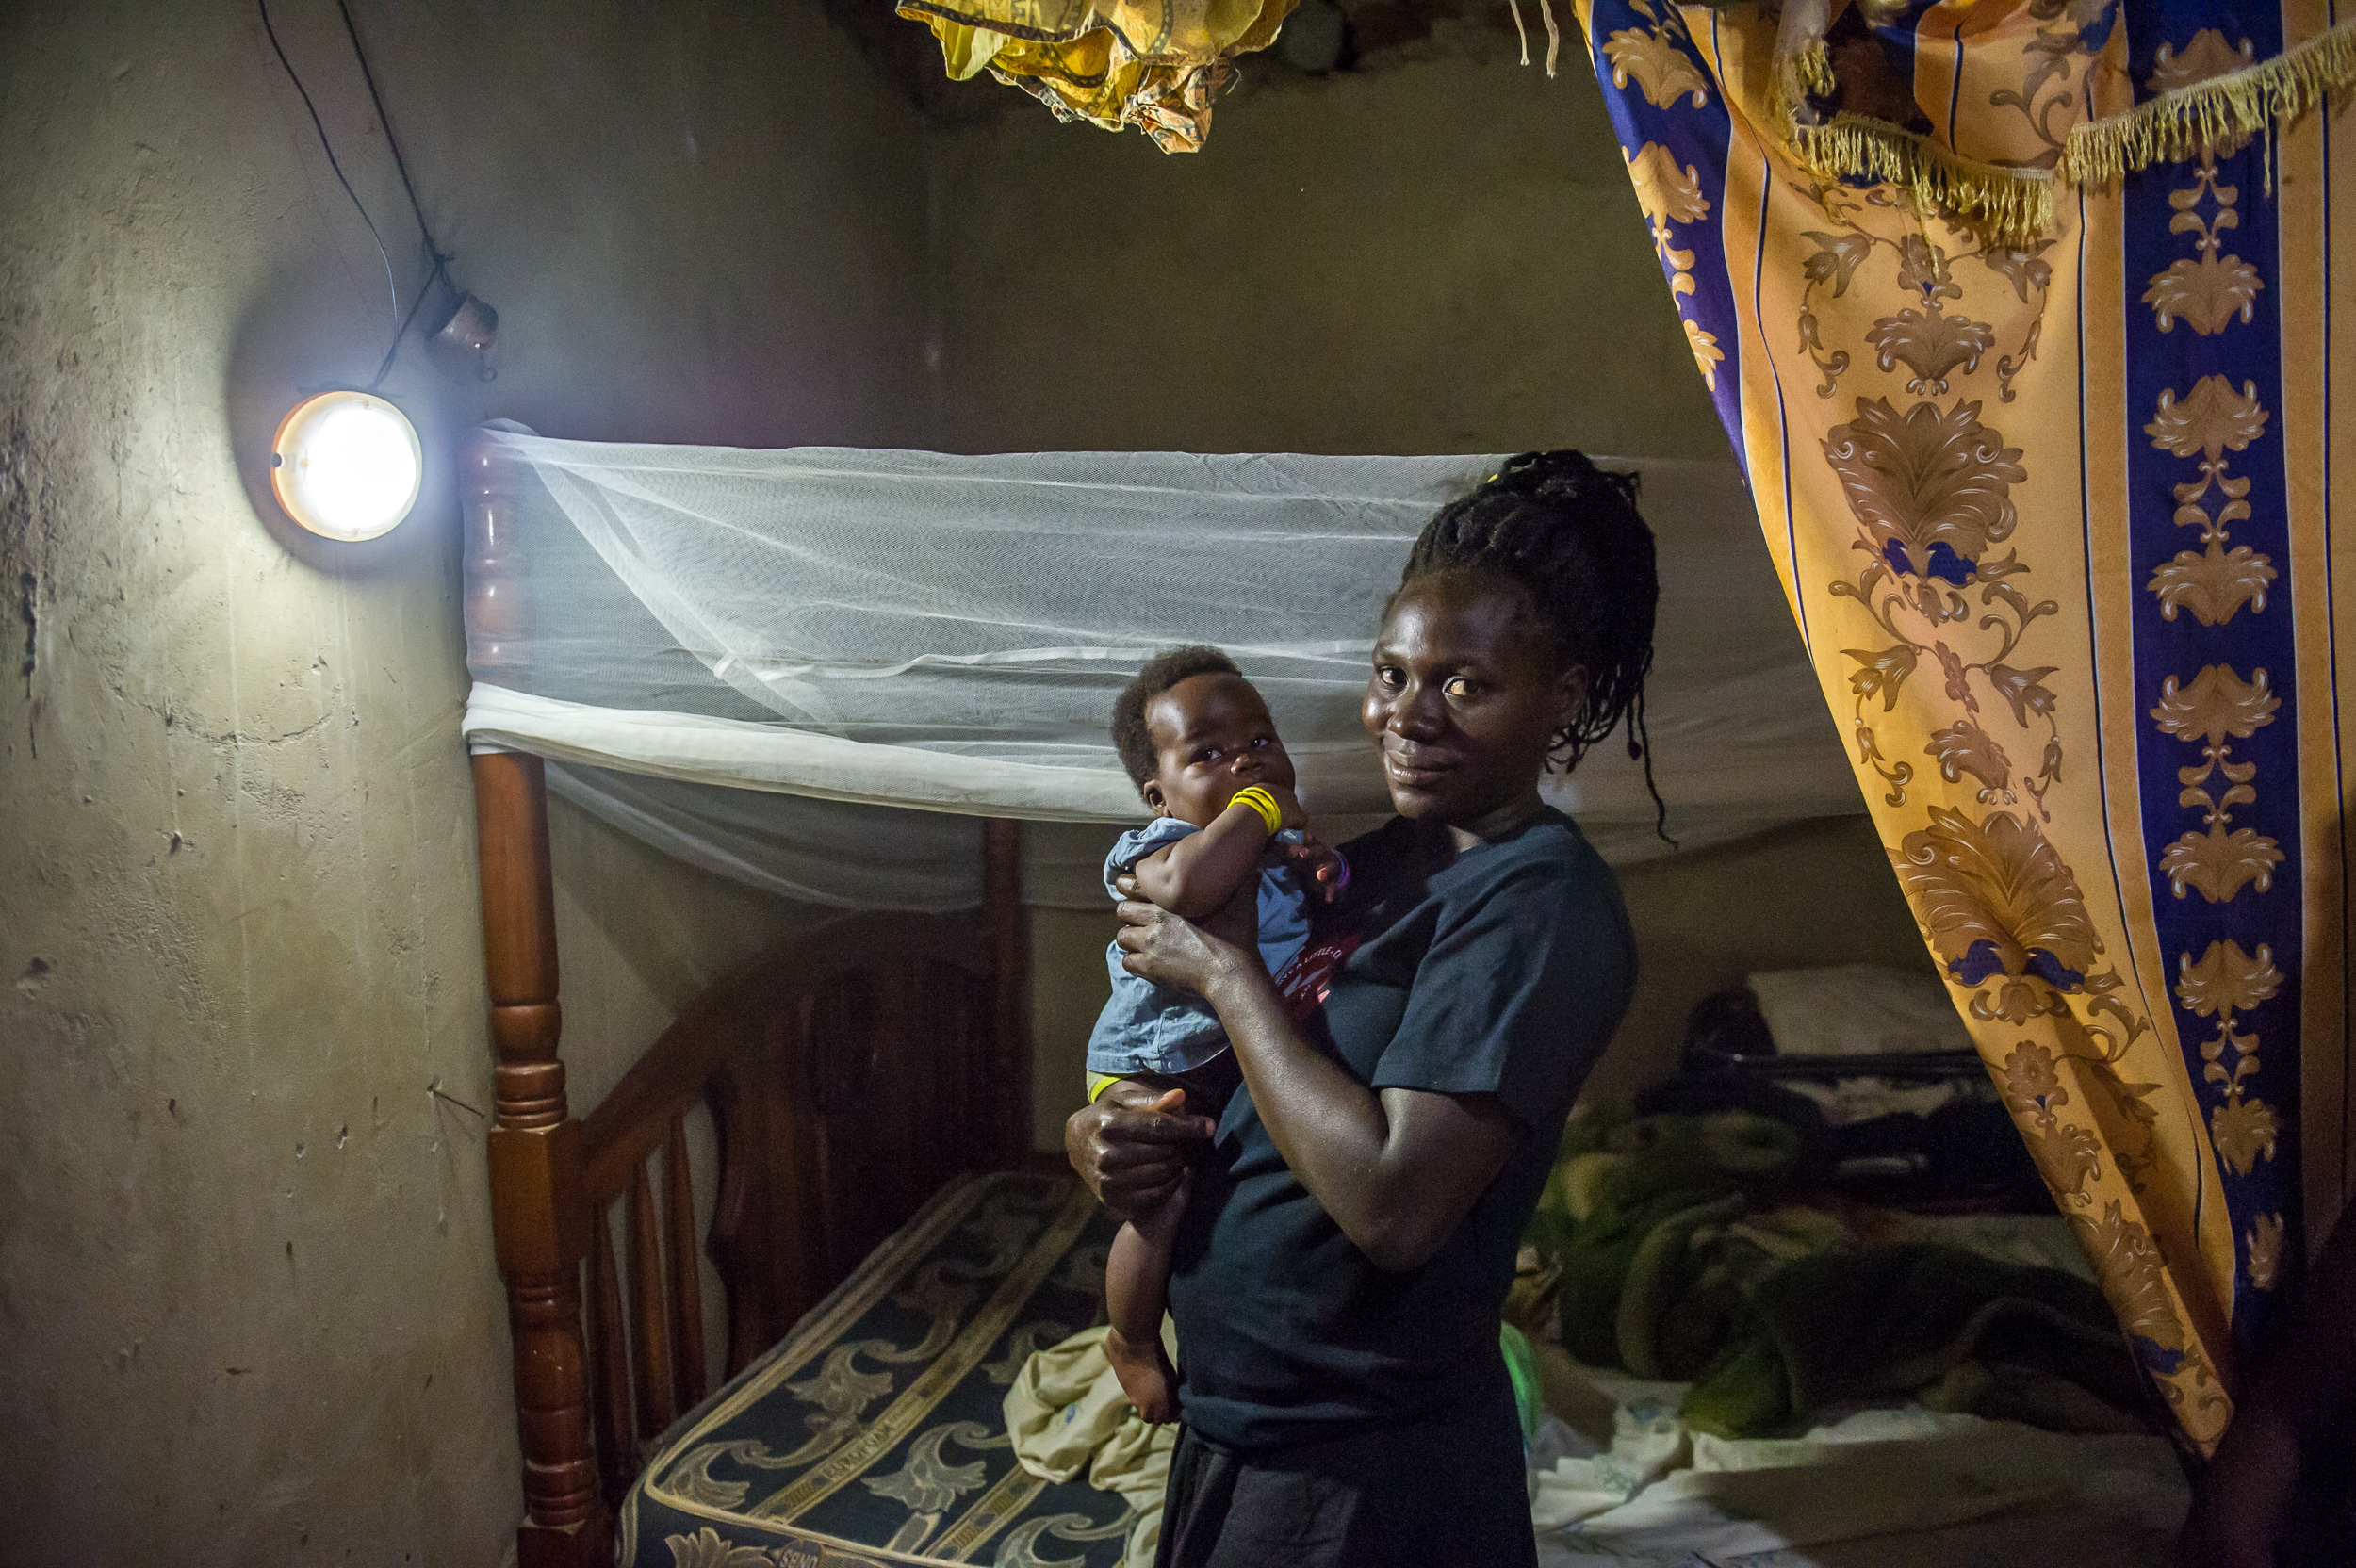 Jane's daughter and grandson in the sleeping area of the home. Jane helps raise her five grandchildren.